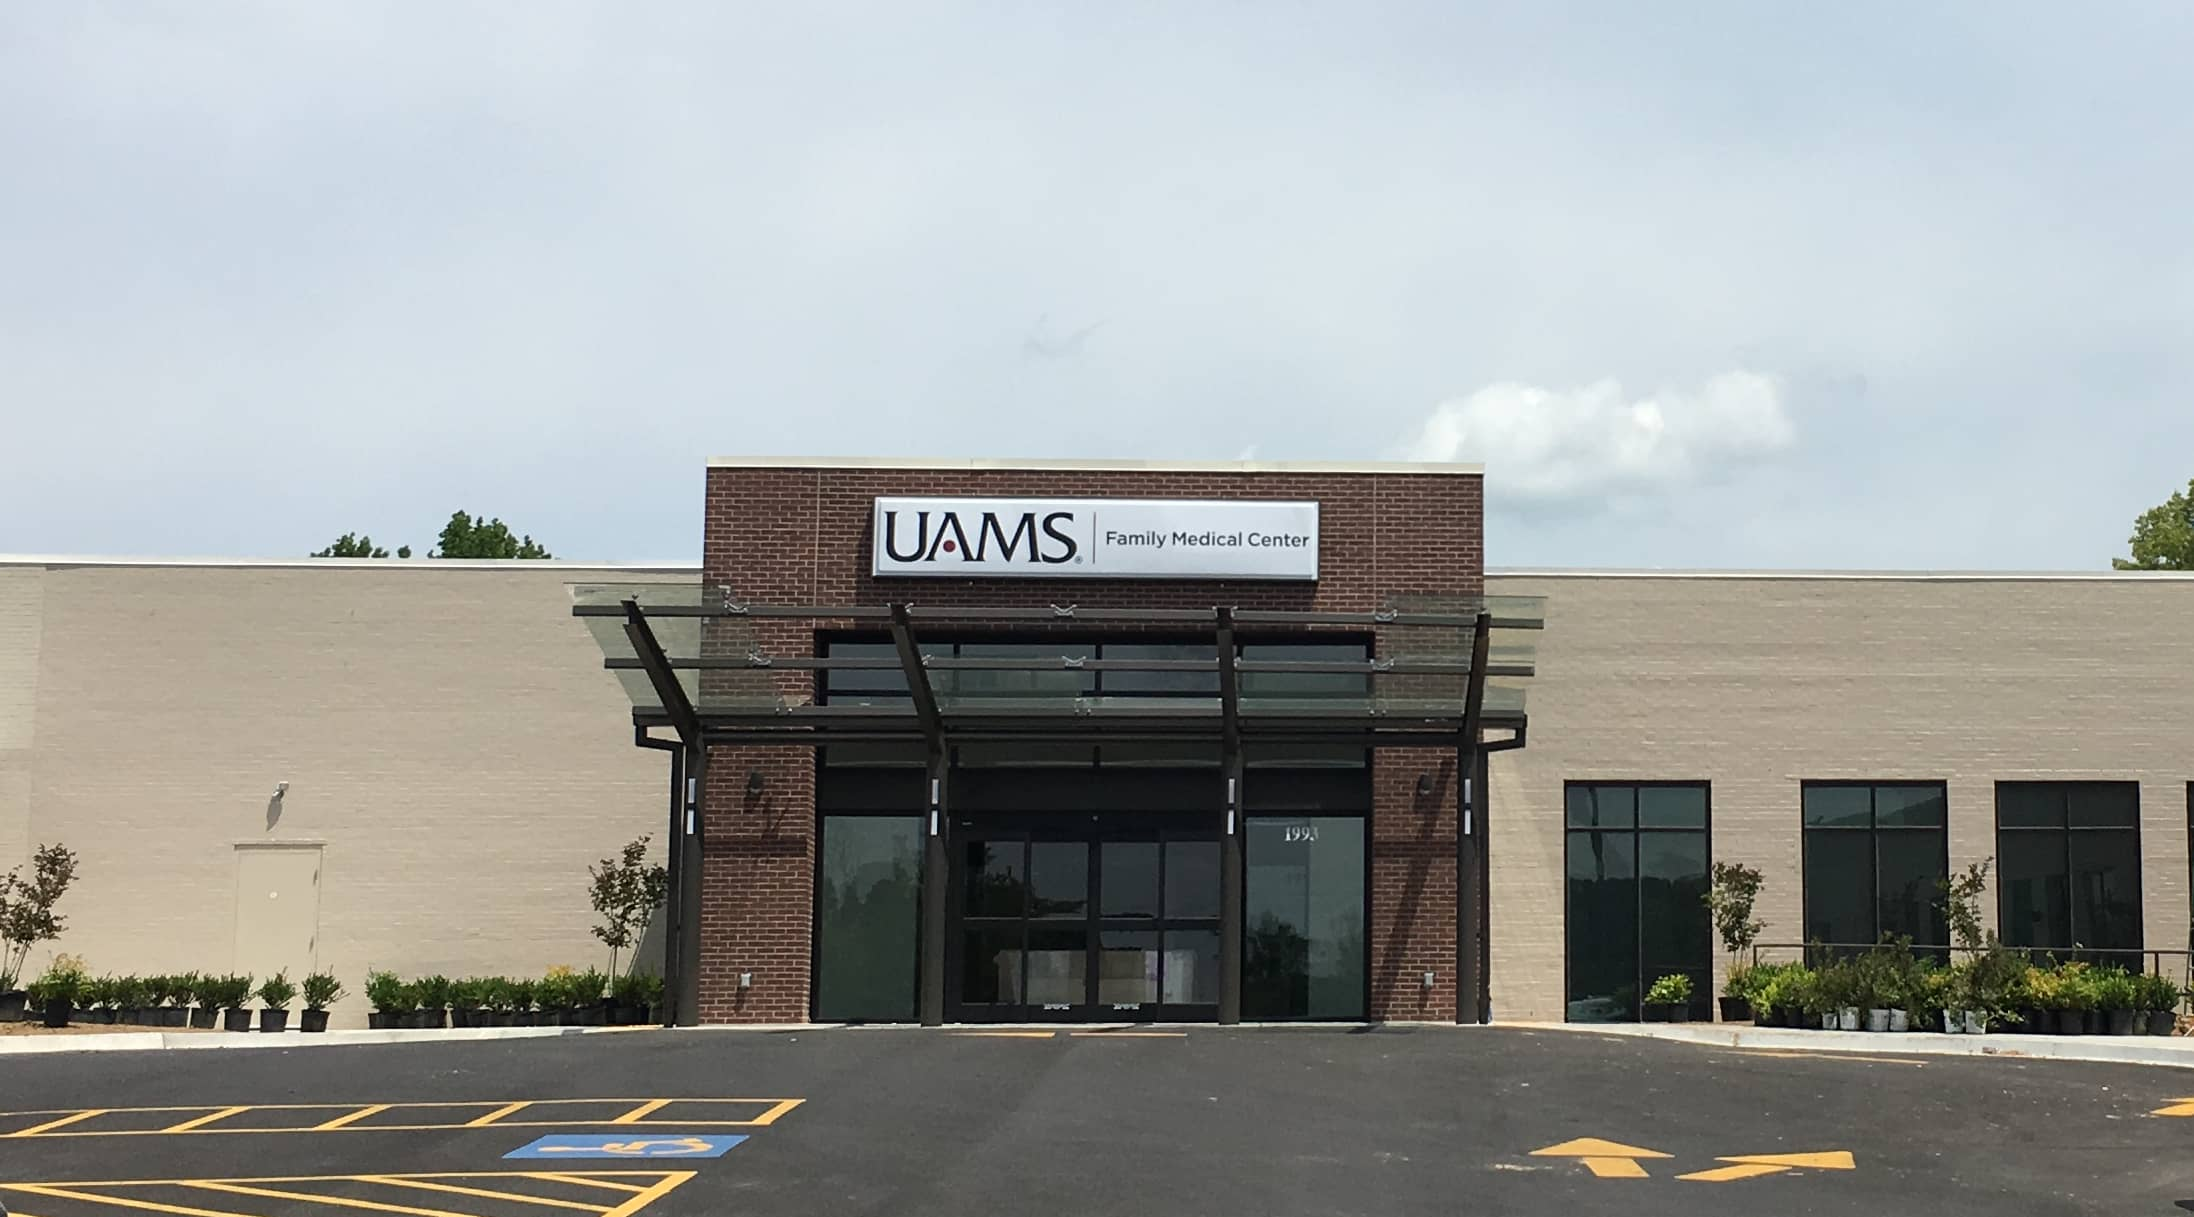 UAMS Family Medical Center